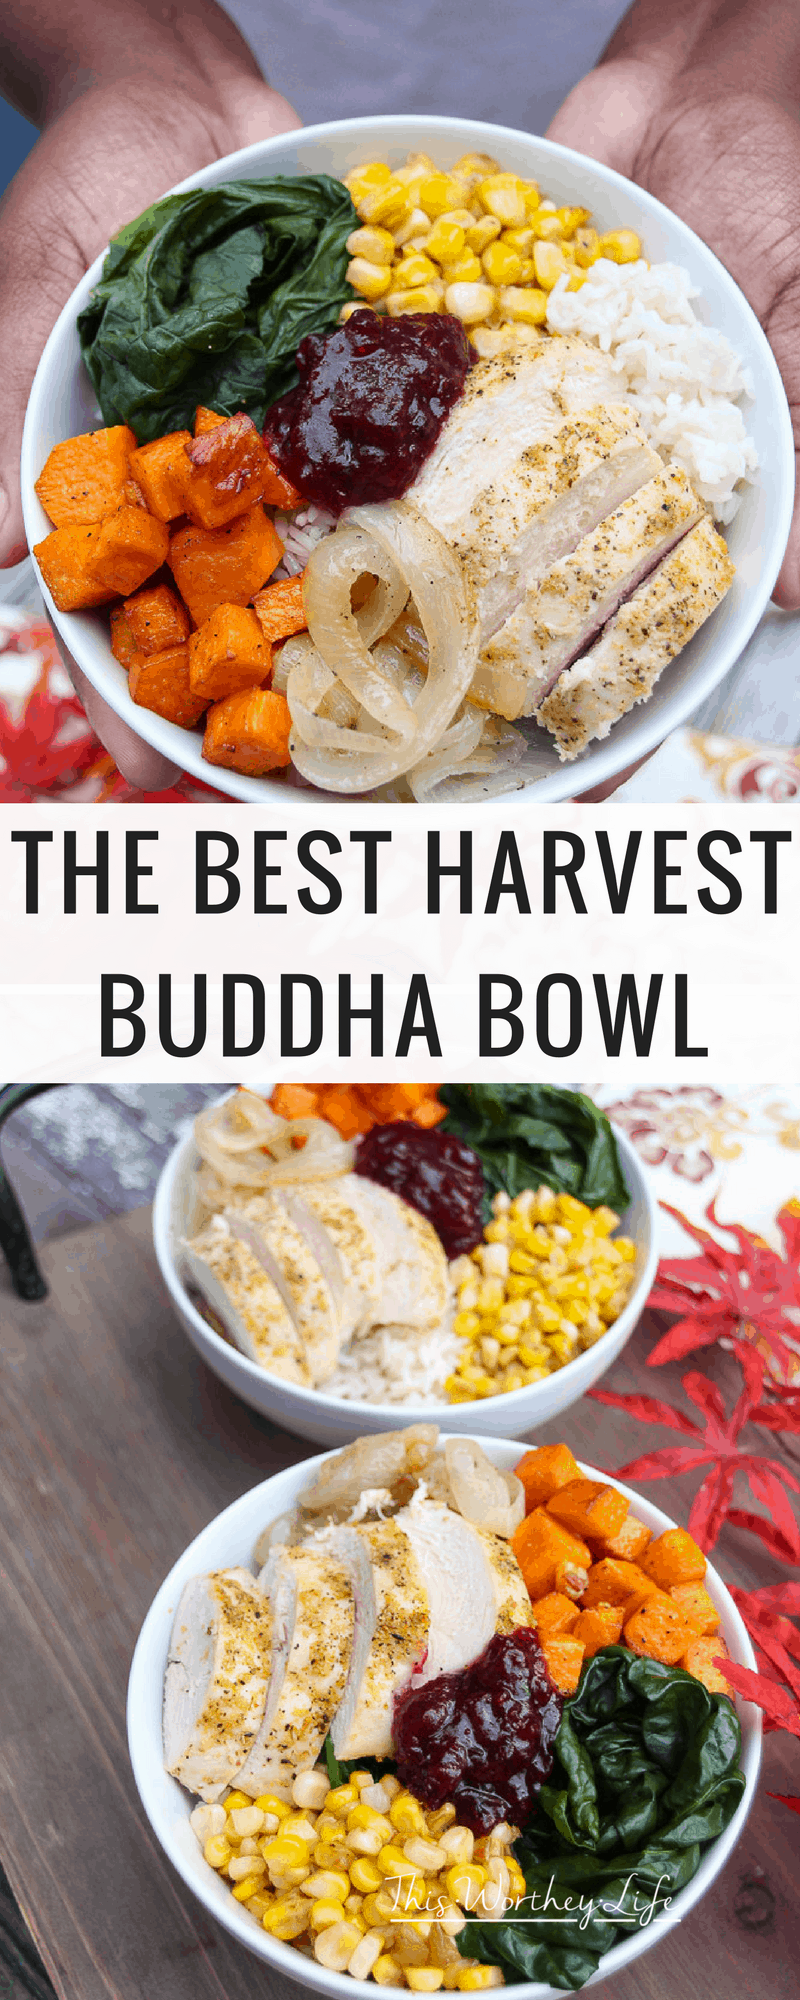 It's Thanksgiving in a bowl! Create a harvest buddha bowl with fresh produce, Jasmine rice, and deliciously seasoned chicken breasts. Get the recipe for our savory, with a sweet hint of Cranberry Sauce +Mint harvest bowl on the blog!